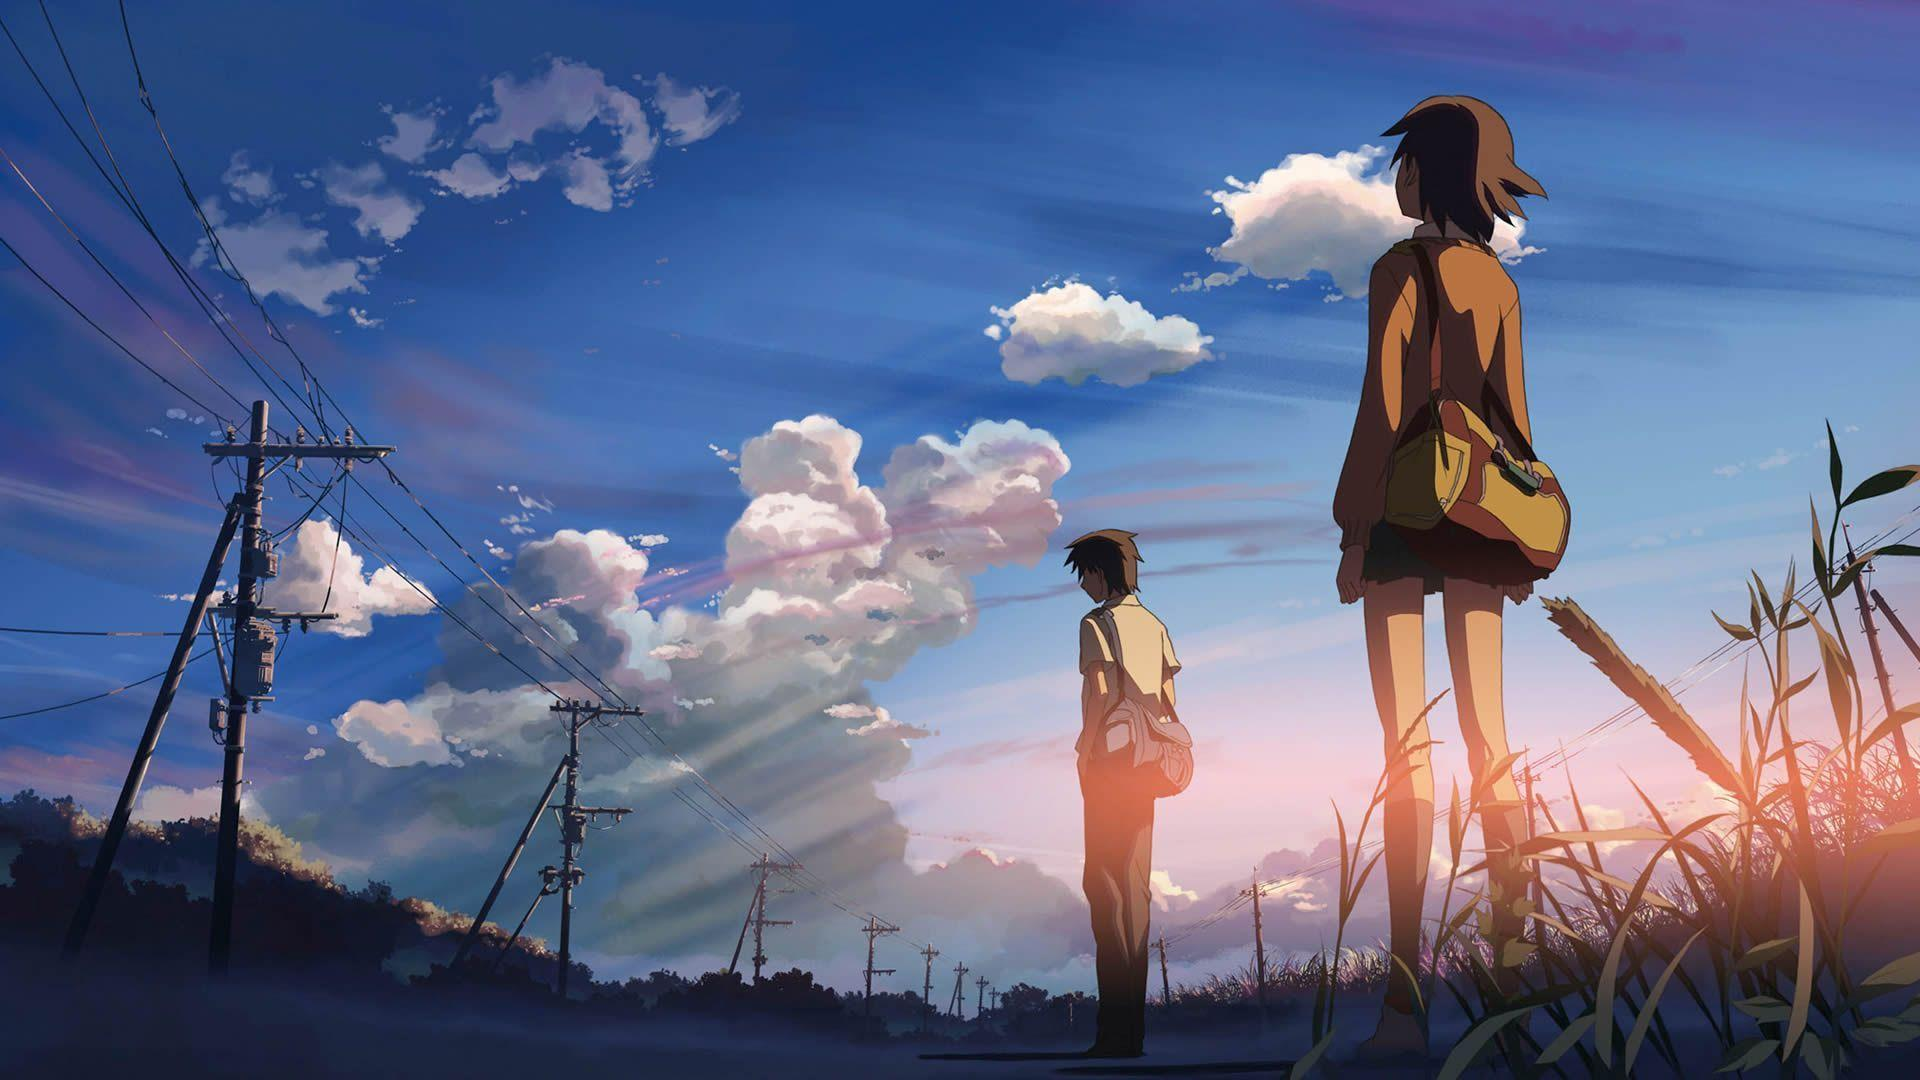 Beautiful Anime Wallpapers - Wallpaper Cave